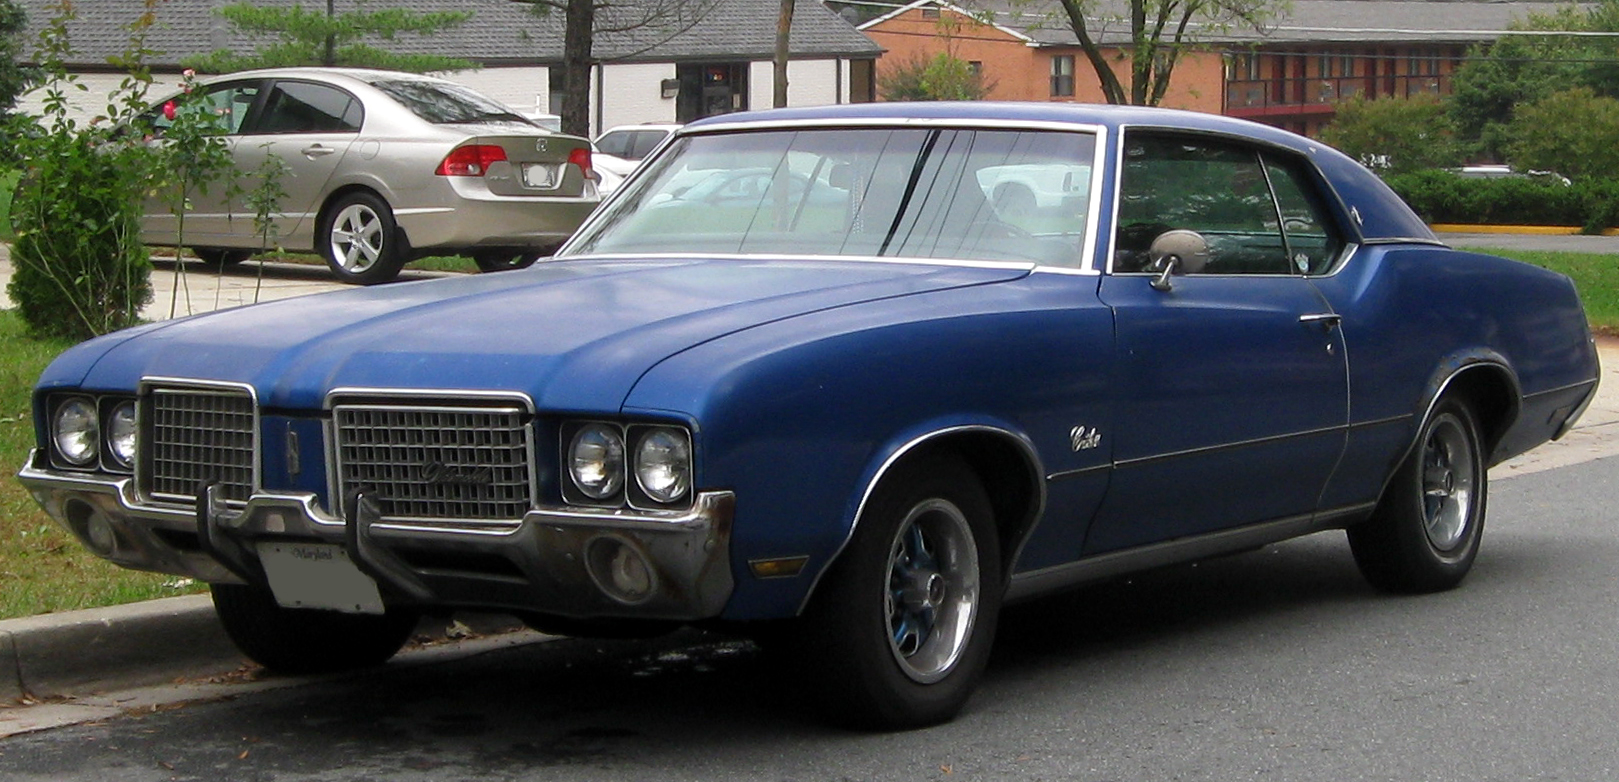 Oldsmobile Cutlass Supreme - Wikipedia